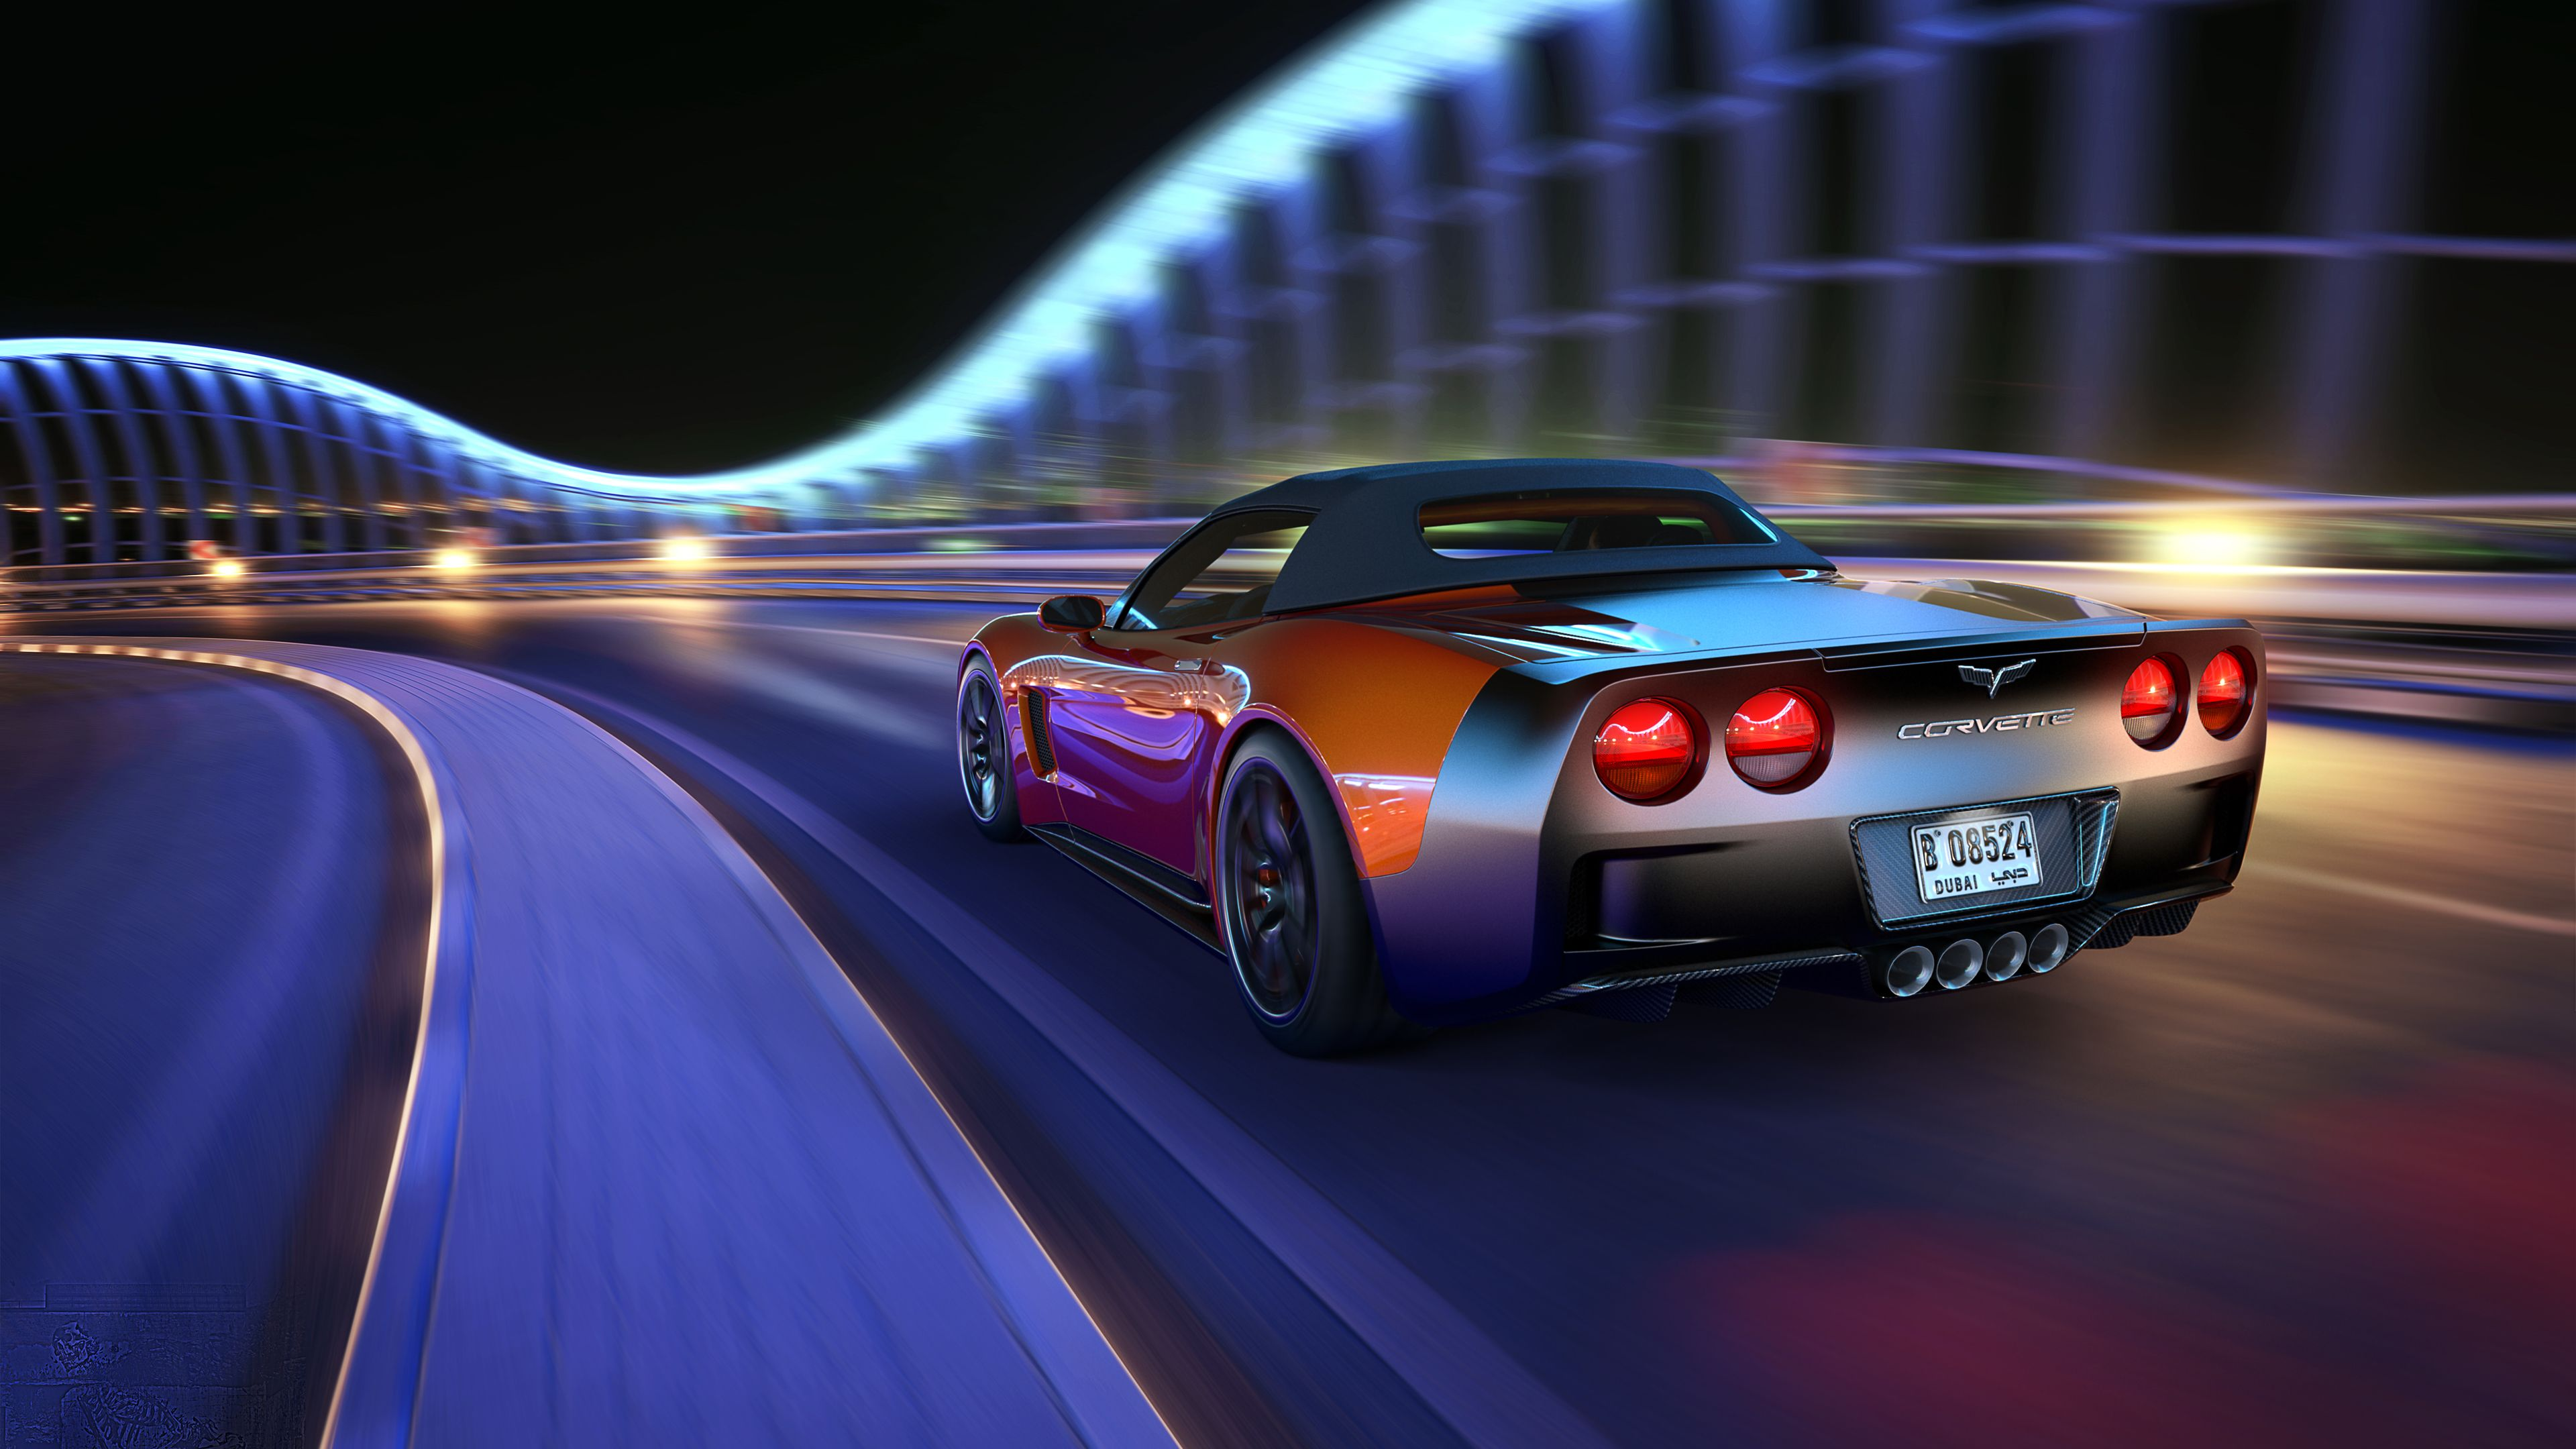 Wallpaper 4k Chevrolet Corvette In Dubai 4k Wallpapers Artist Wallpapers Cars Wallpapers Chevrolet Wallpapers Corvette Wallpapers Hd Wallpapers Racing Wal Instagram Takipci